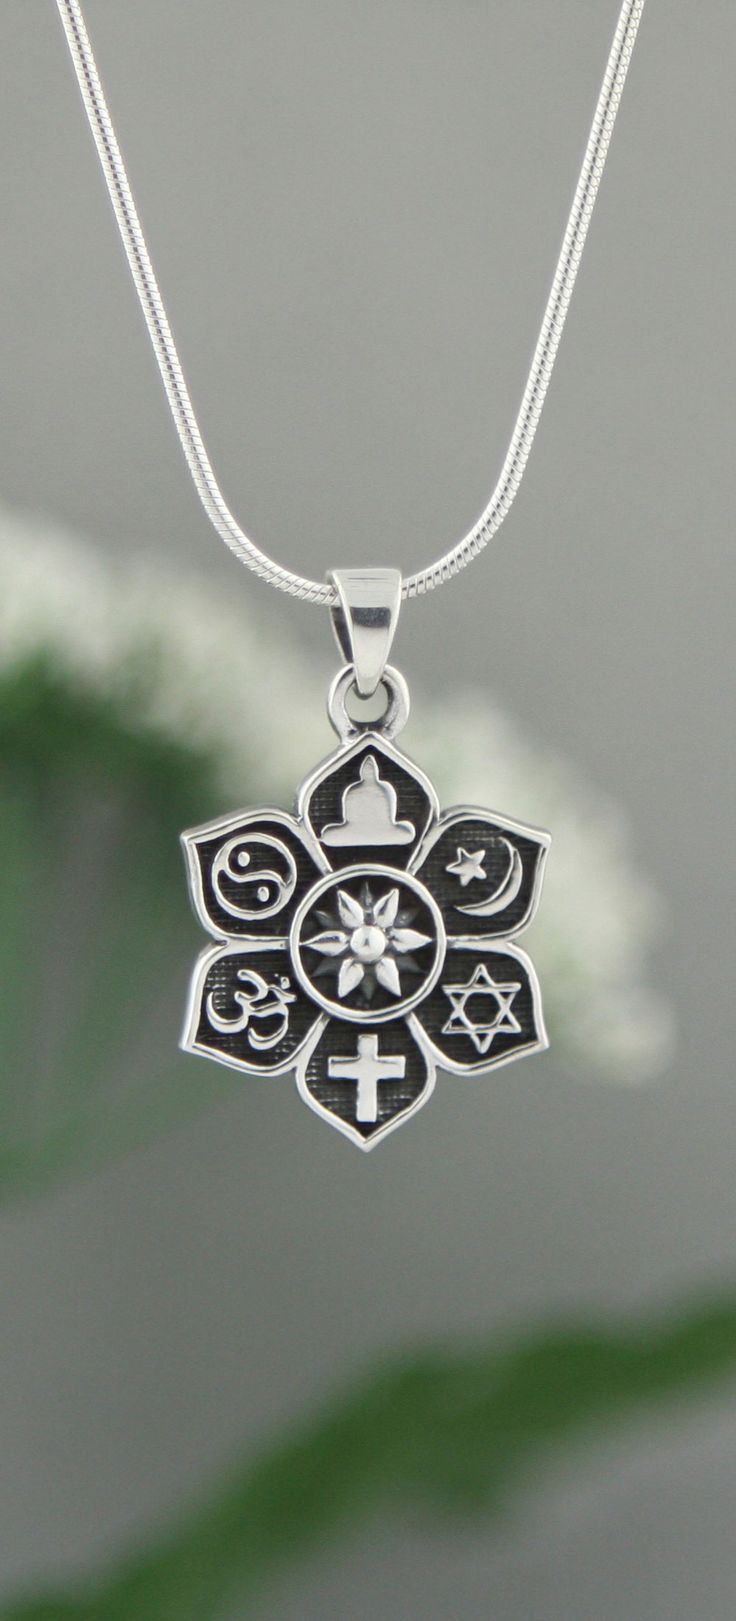 Sterling Silver Coexist Pendant